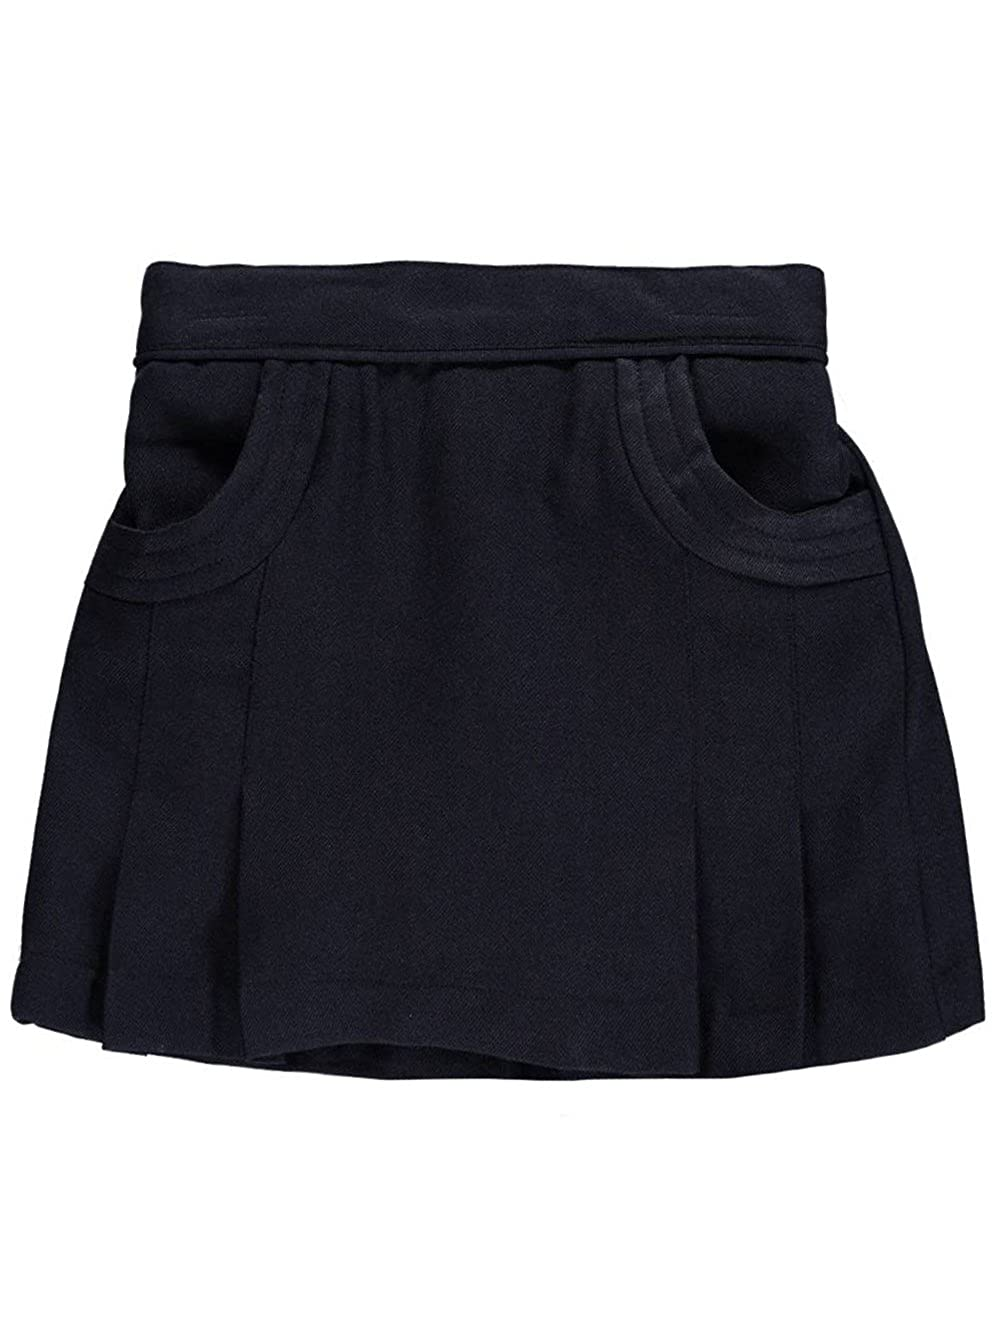 Nautica Little Girls' Stitched Pocket Scooter Skirt - navy, 6